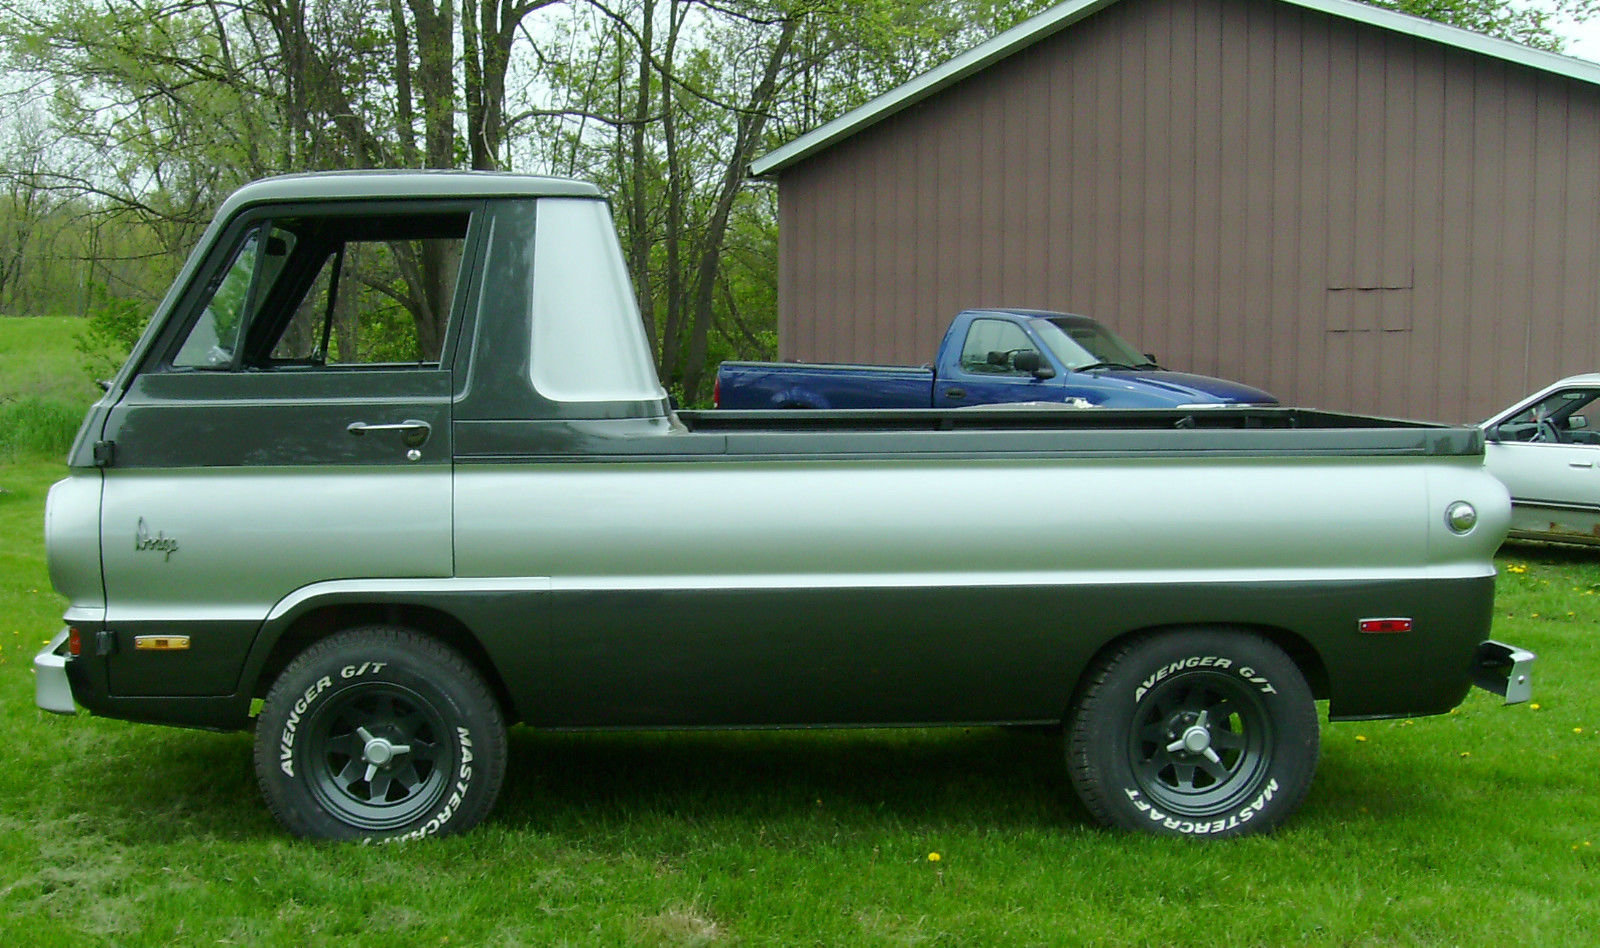 Santa Forget Your Stuff? Buy One Of The Nicest A100 Trucks We Have Ever Seen On eBay – Mopar Goodness